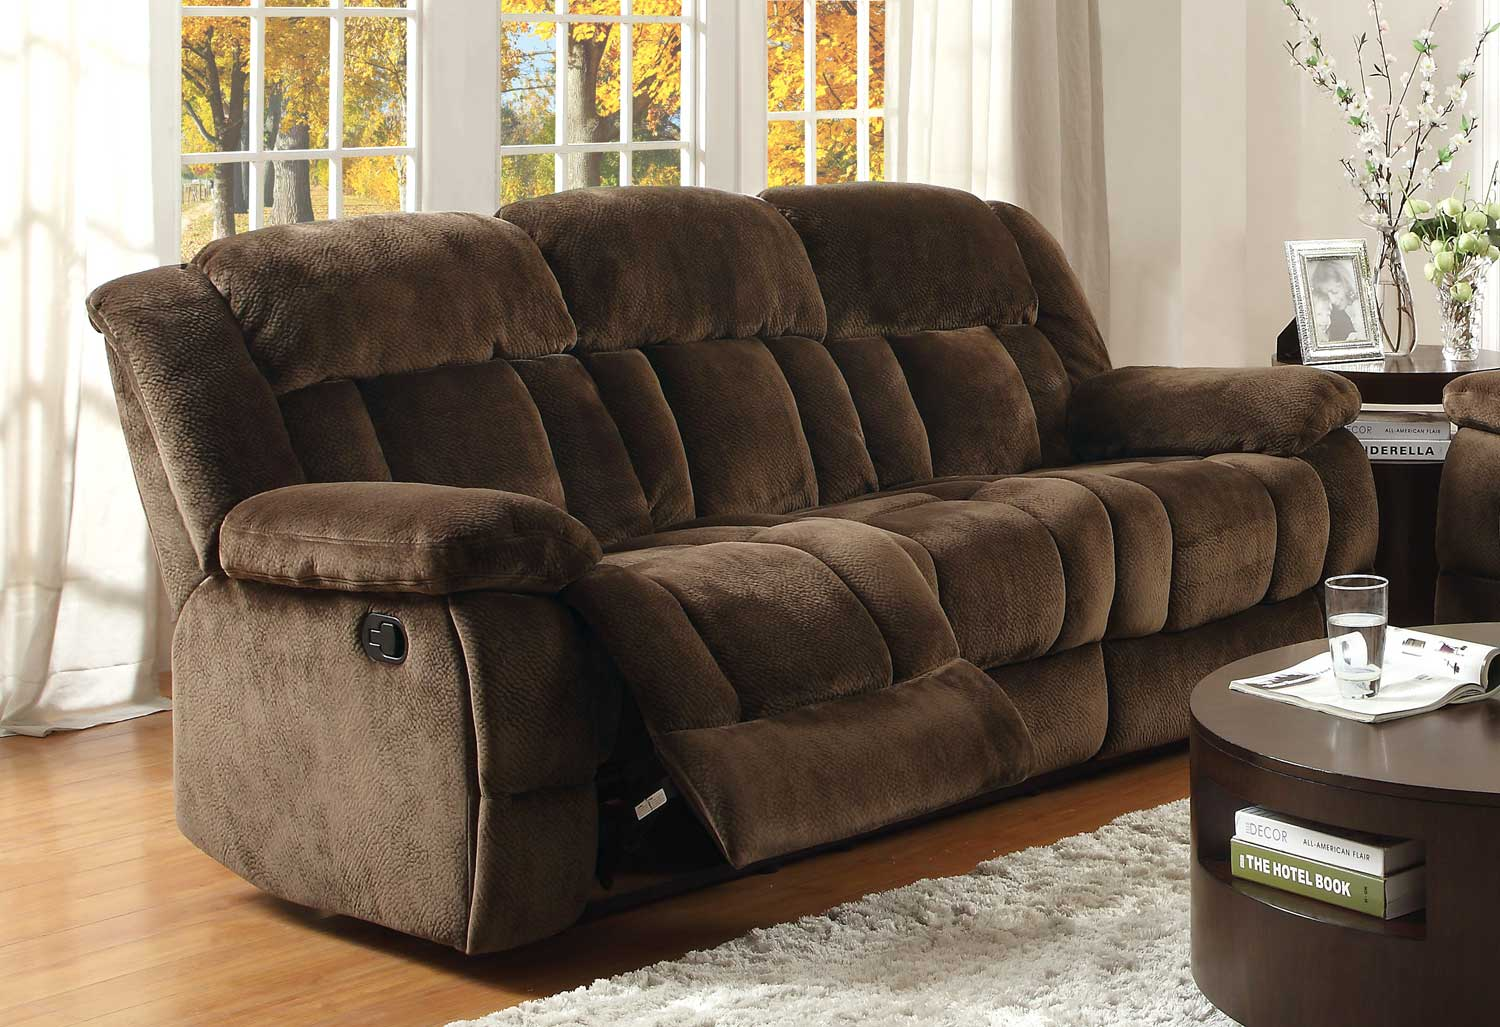 Homelegance Laurelton Double Reclining Sofa Chocolate